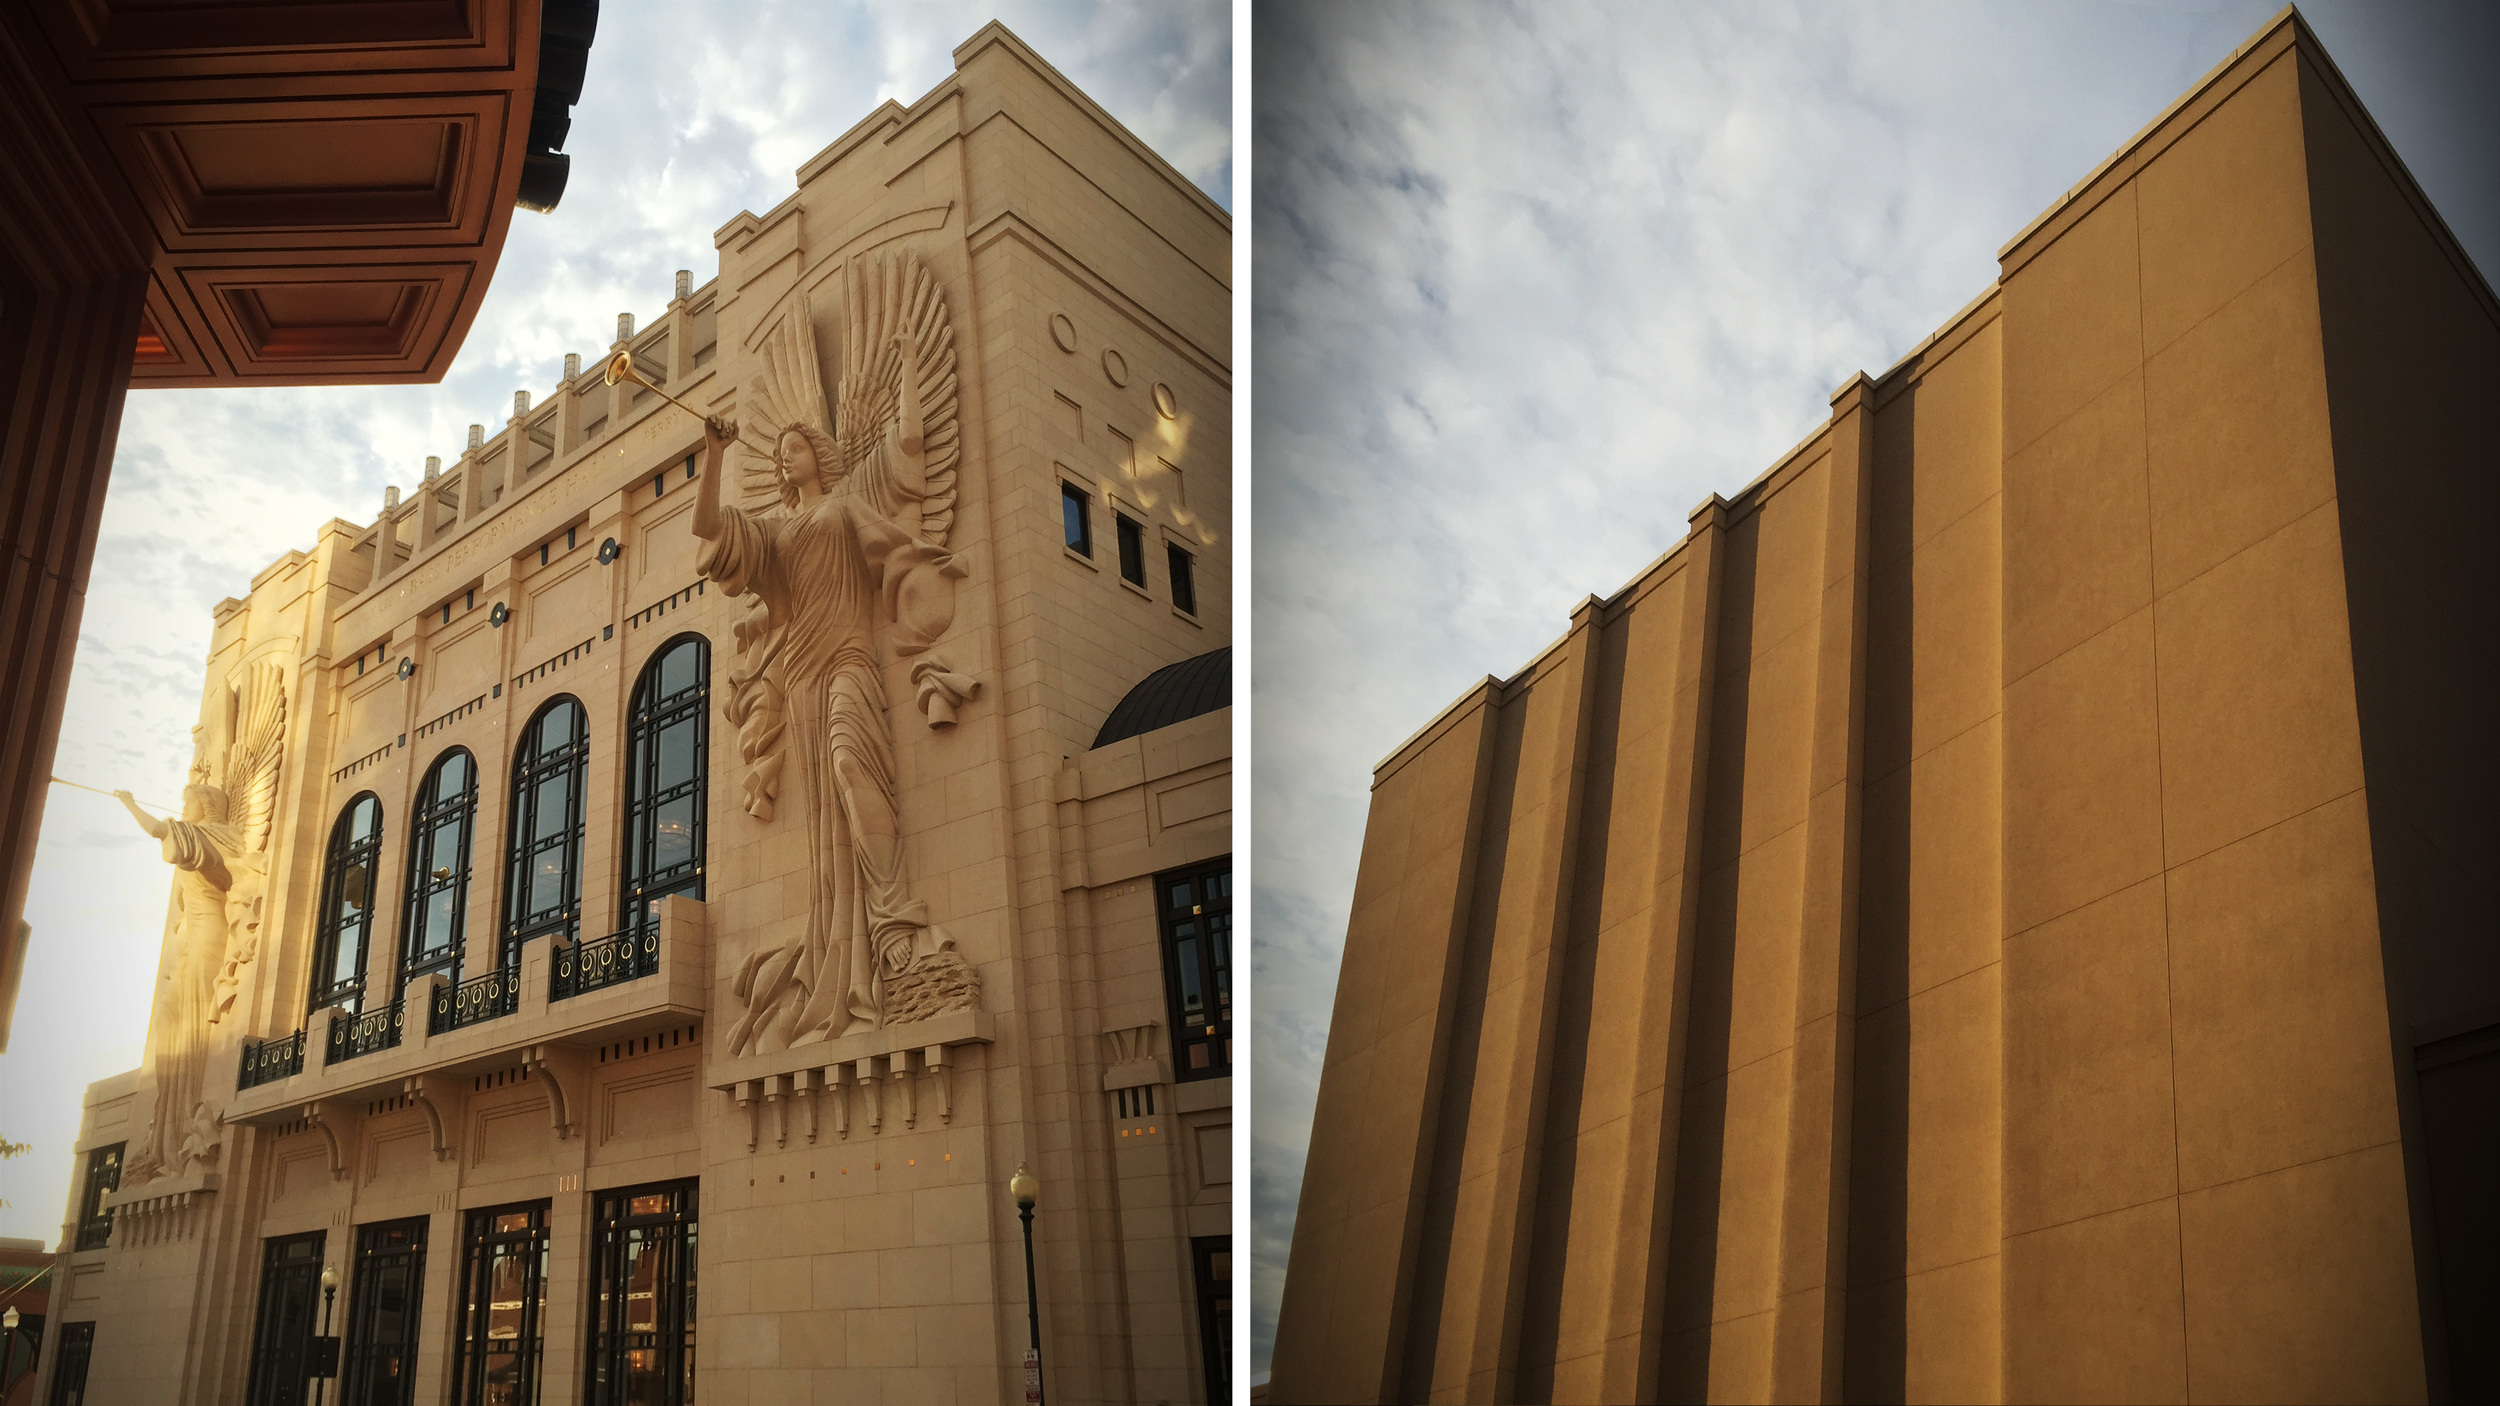 The front of Bass Performance Hall appears on the left while its rear appears on the right